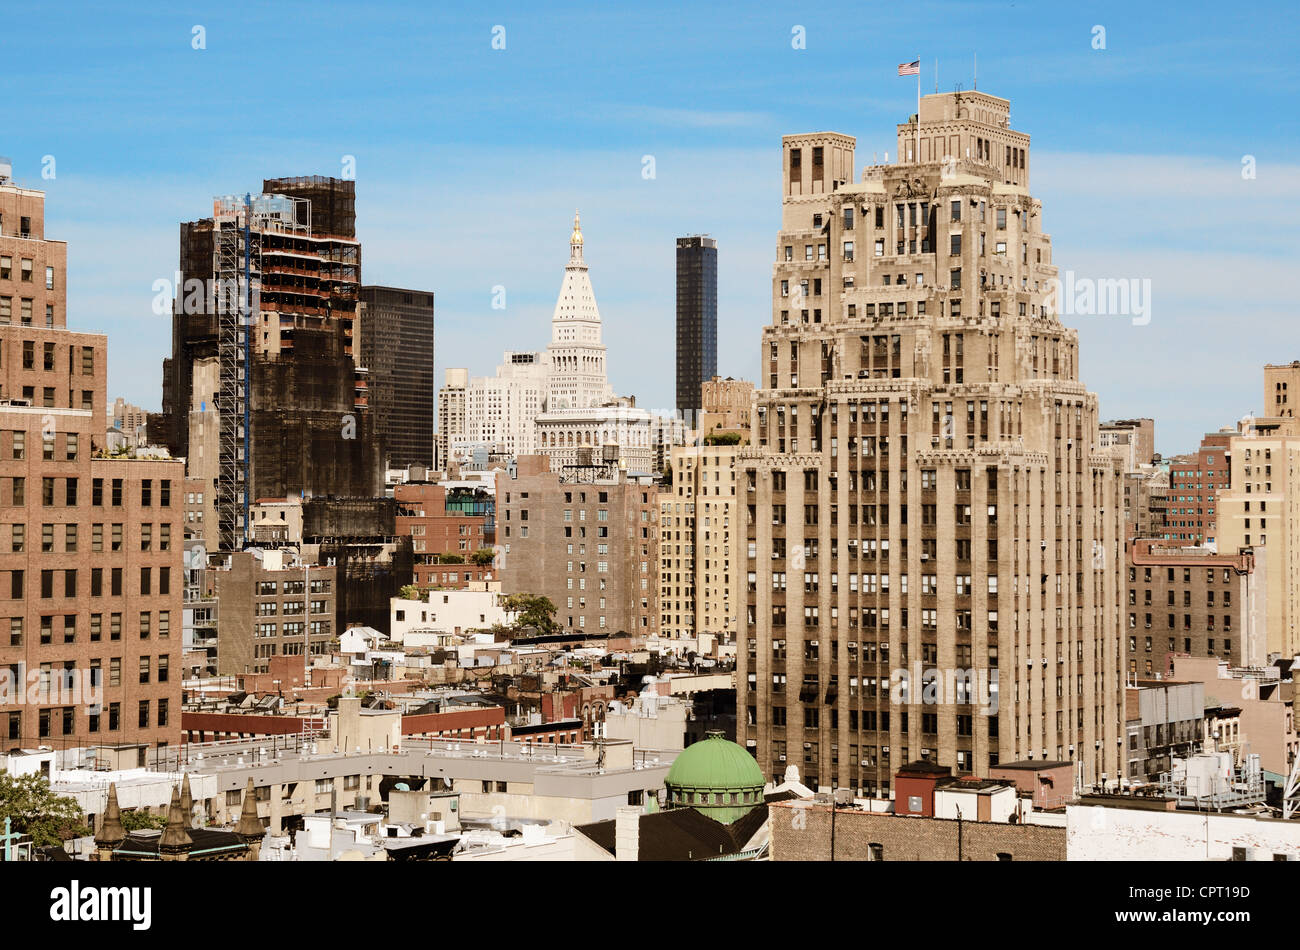 Manhattan viewed from a West Village rooftop looking Northeast - Stock Image